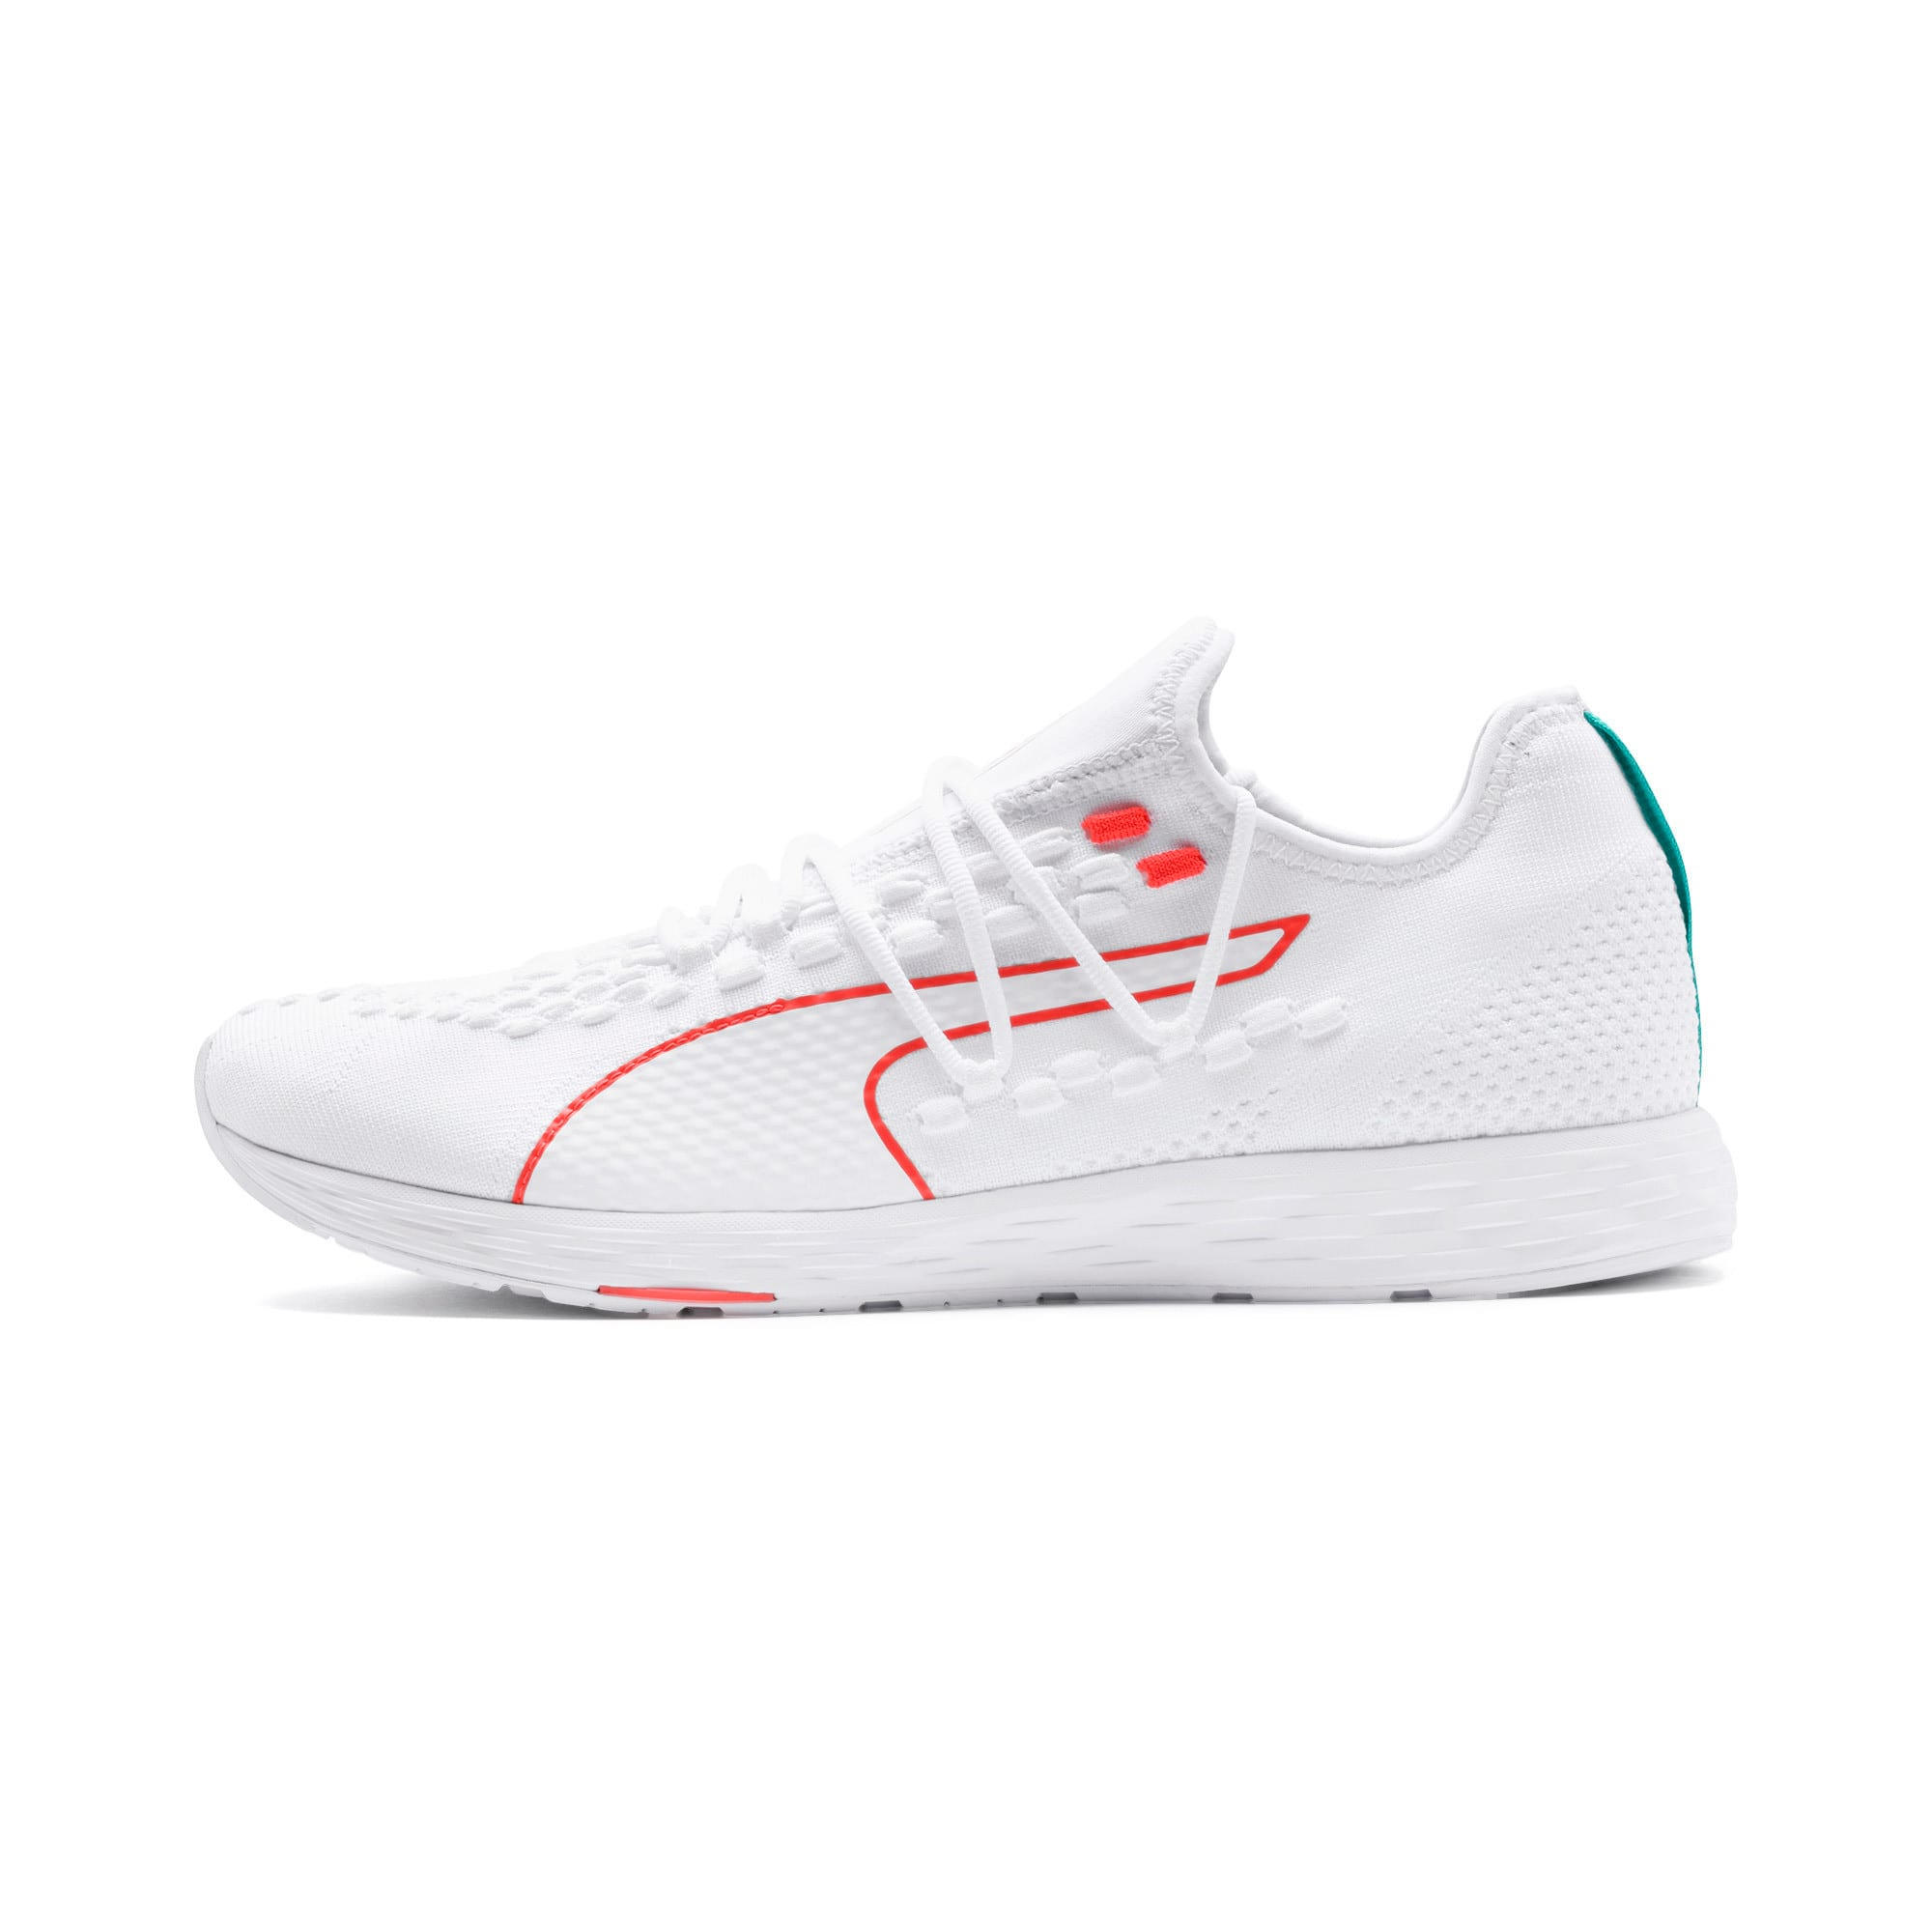 Thumbnail 1 of SPEED RACER Running Shoes, White-Nrgy Red-Turquoise, medium